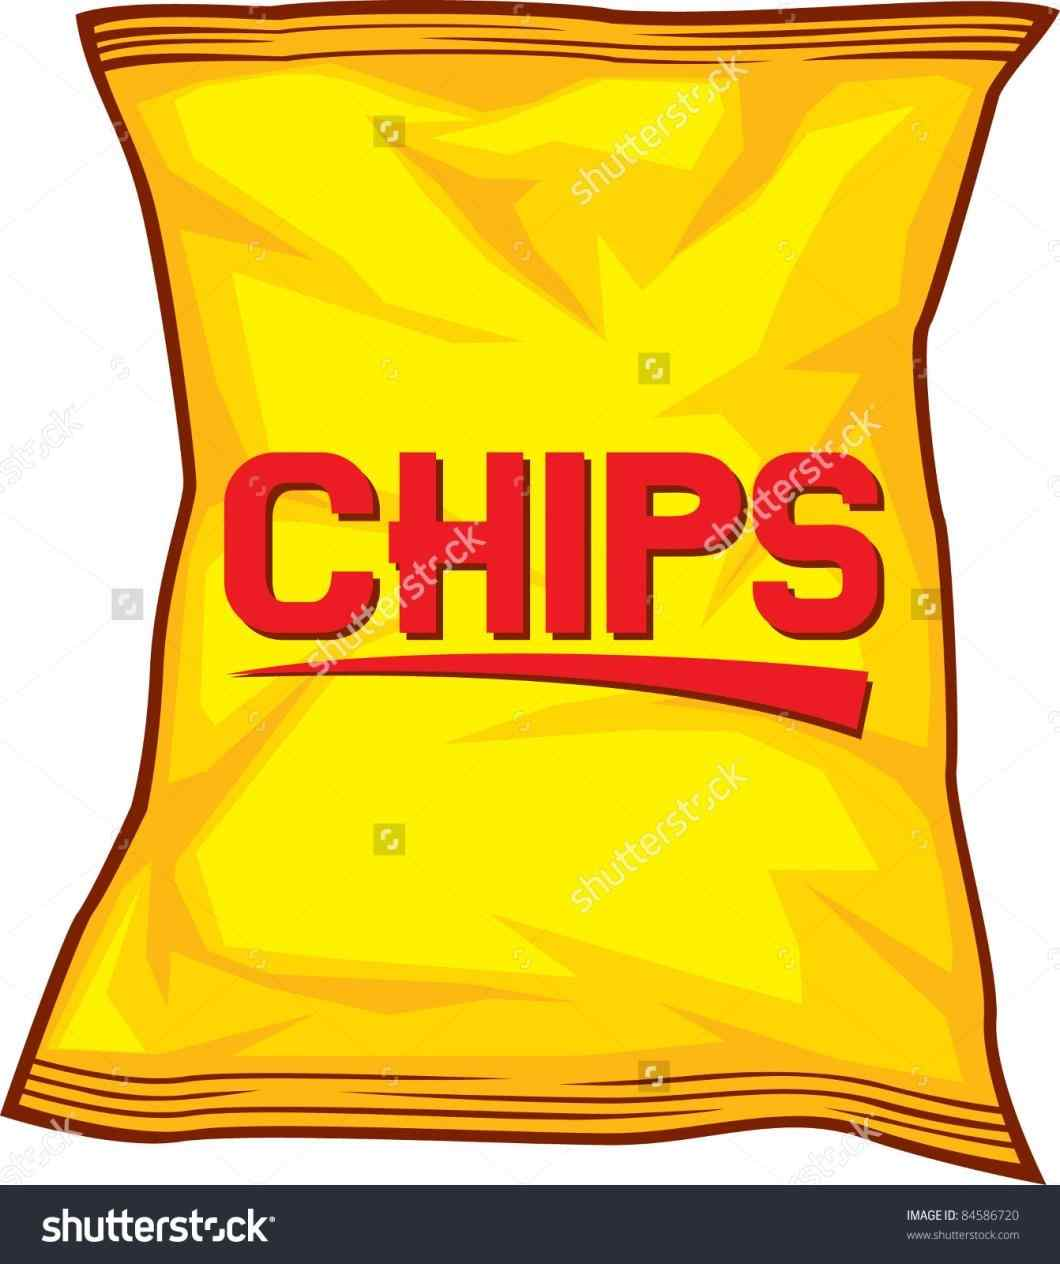 Chip clipart chip wrapper. Lays chips clipartuse potato